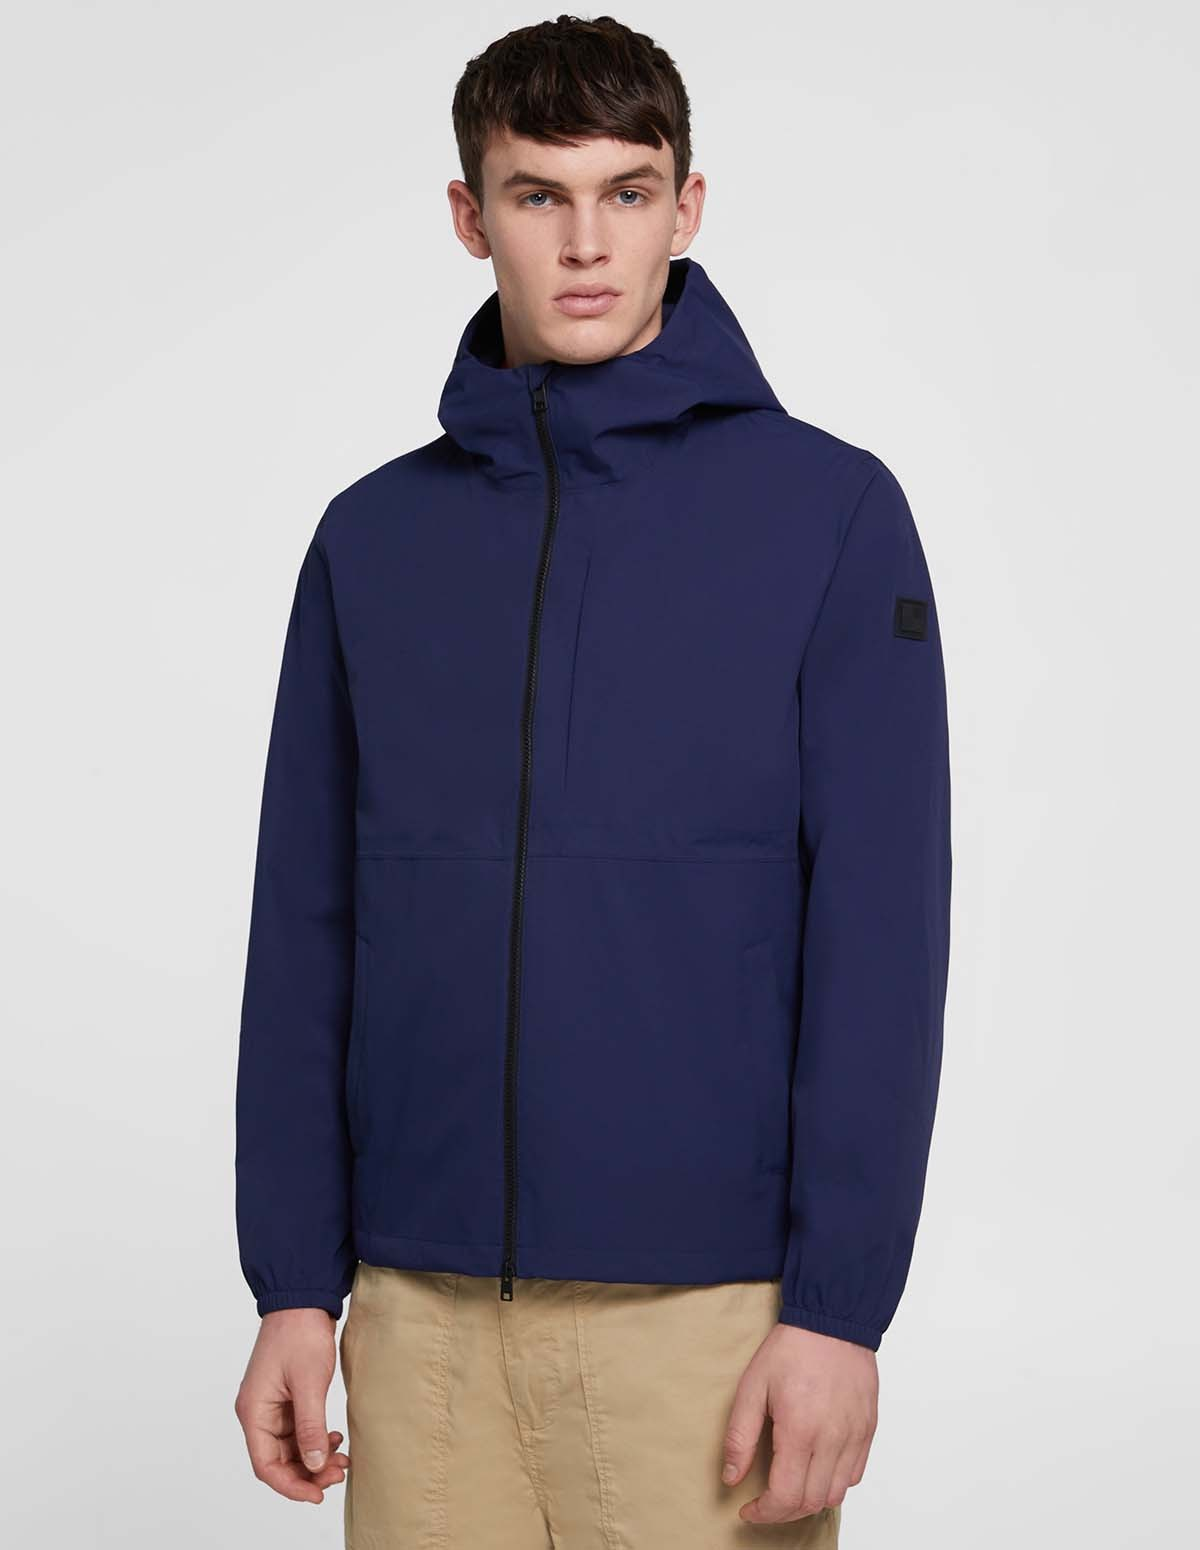 Wr Pacific Jkt 2l - PEACOAT BLUE